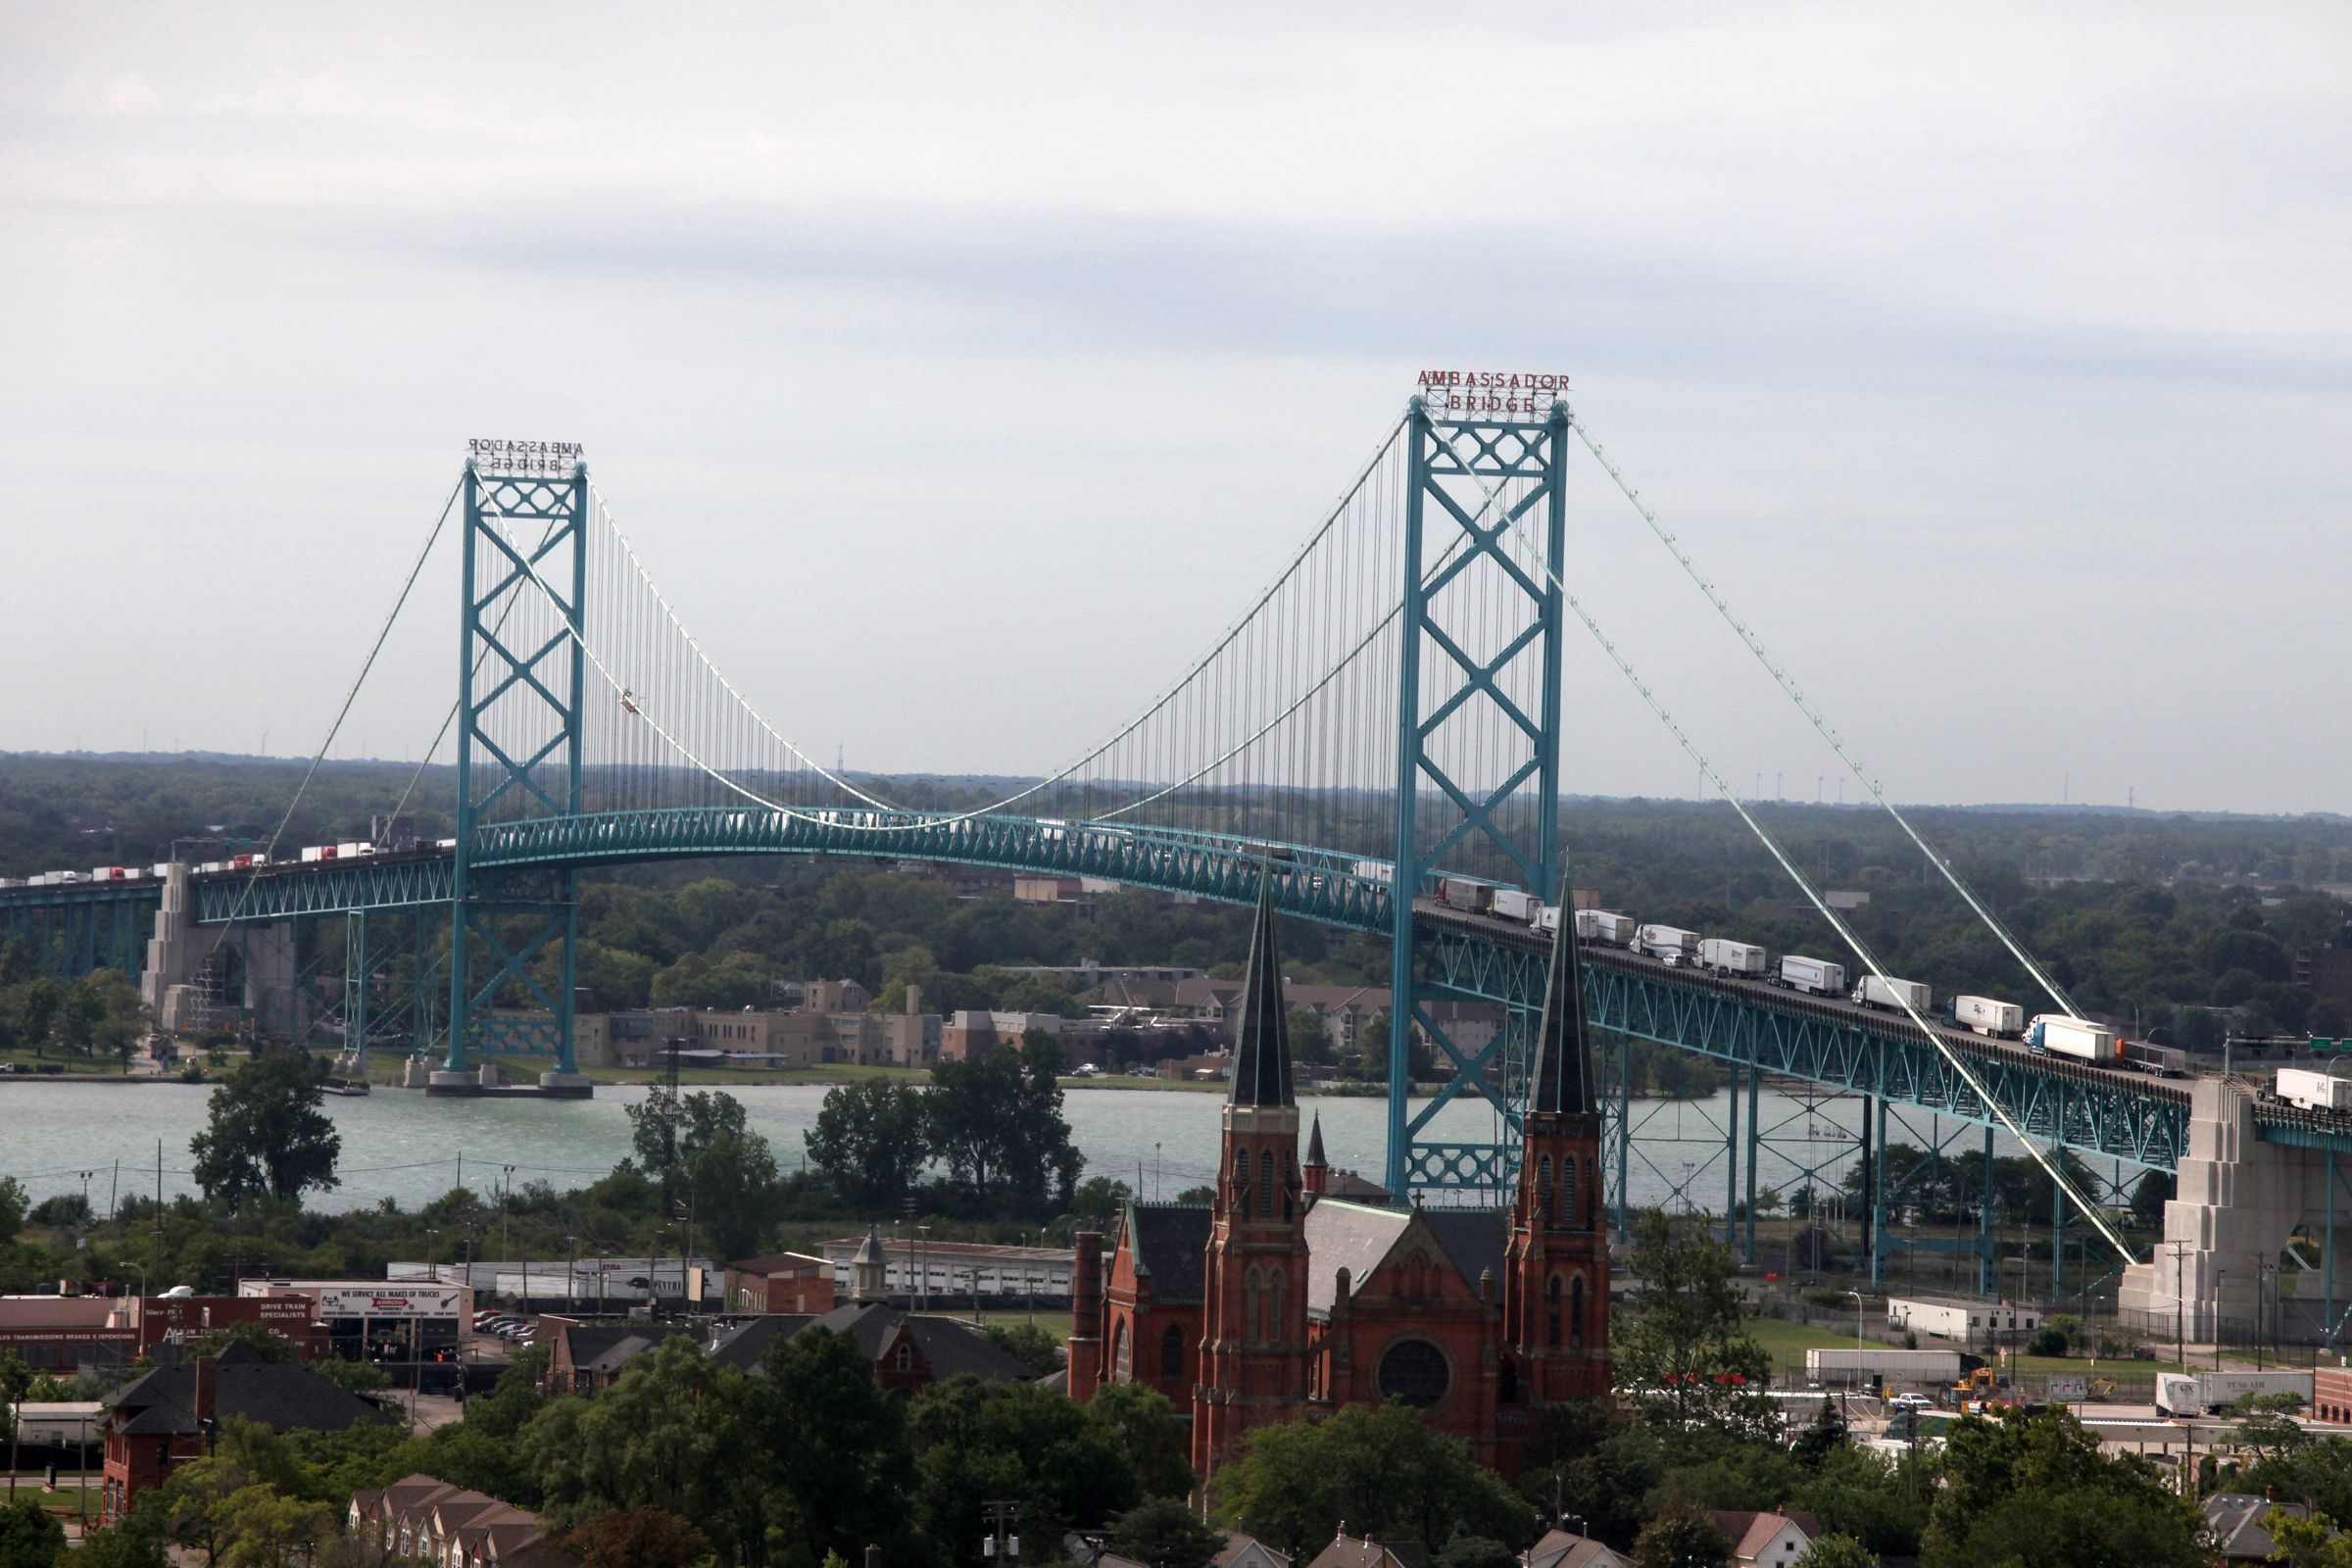 Ambassador Bridge reopens after 'person in crisis'